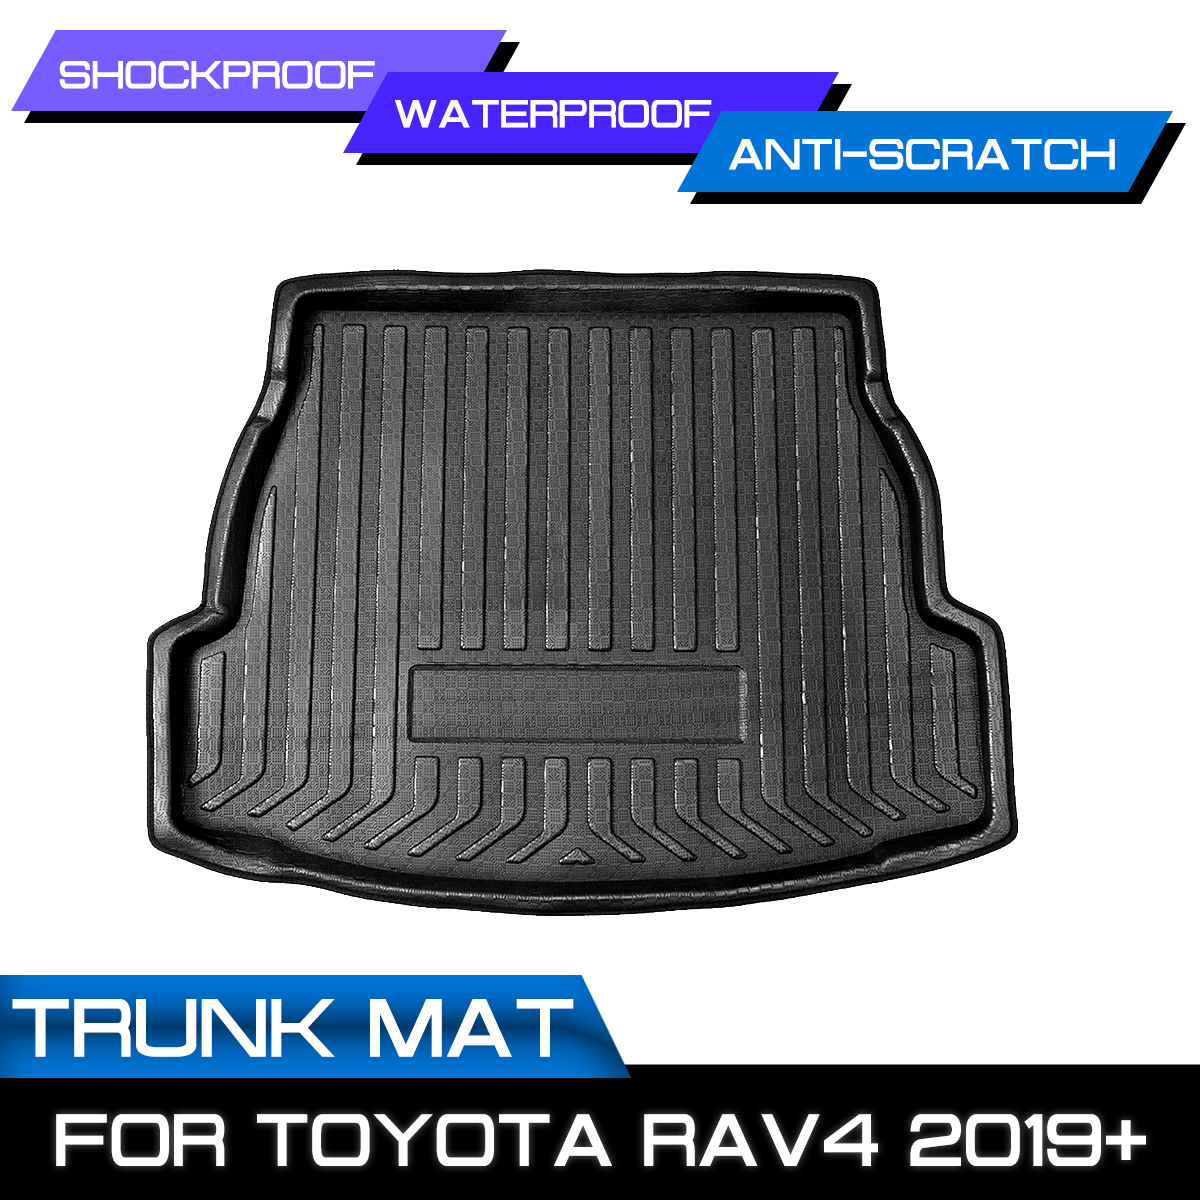 For Toyota RAV4 2019+ Car Rear Trunk Boot Liner Cargo Mat Luggage Tray Floor Carpet Mud Protector Replacement Car Accessories|  - title=